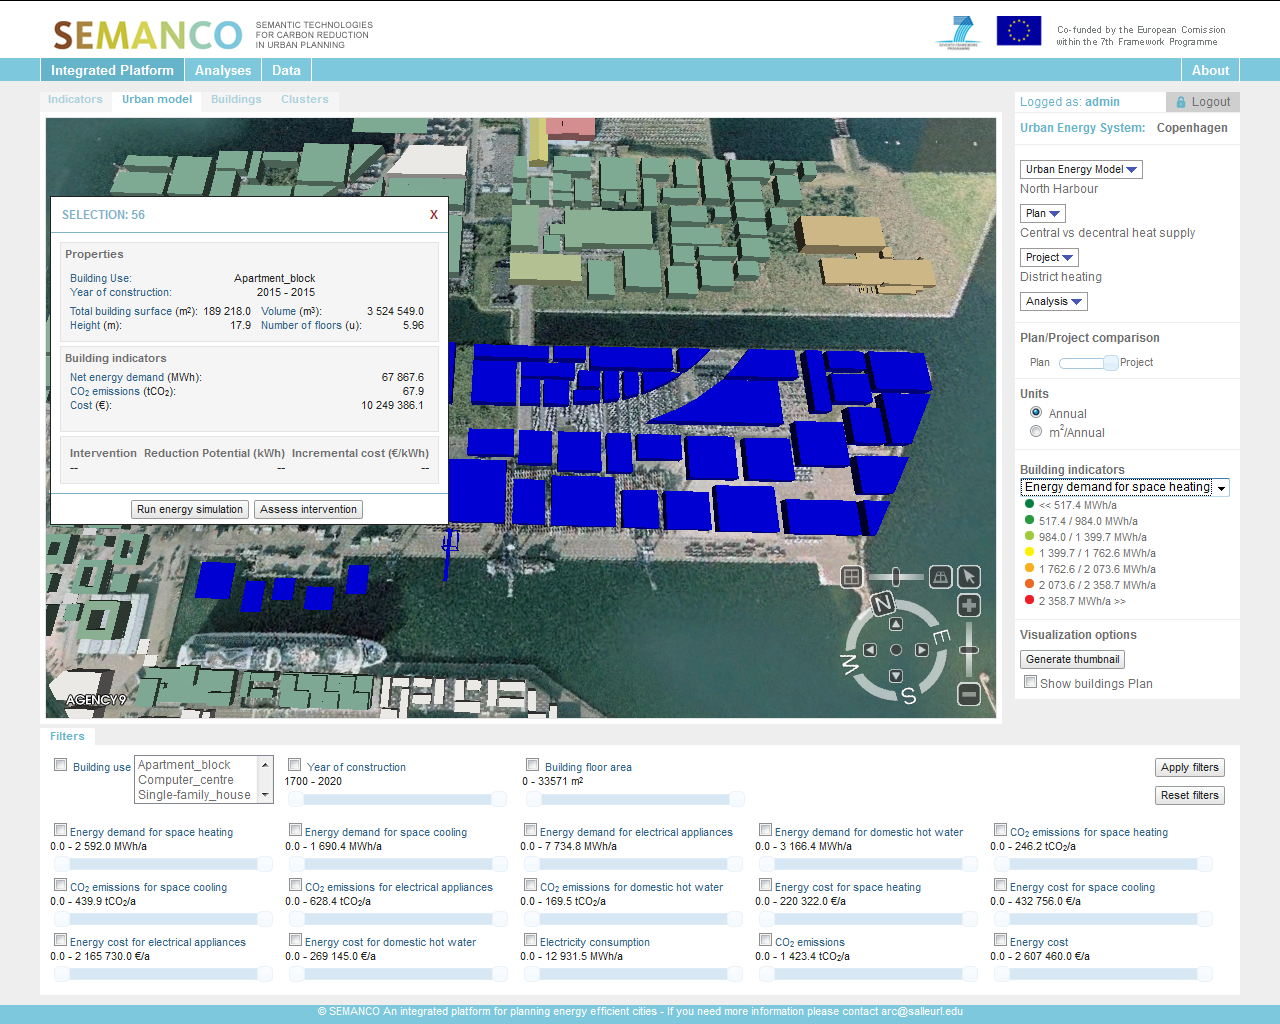 4.2 Run energy simulation for the buildings in the project